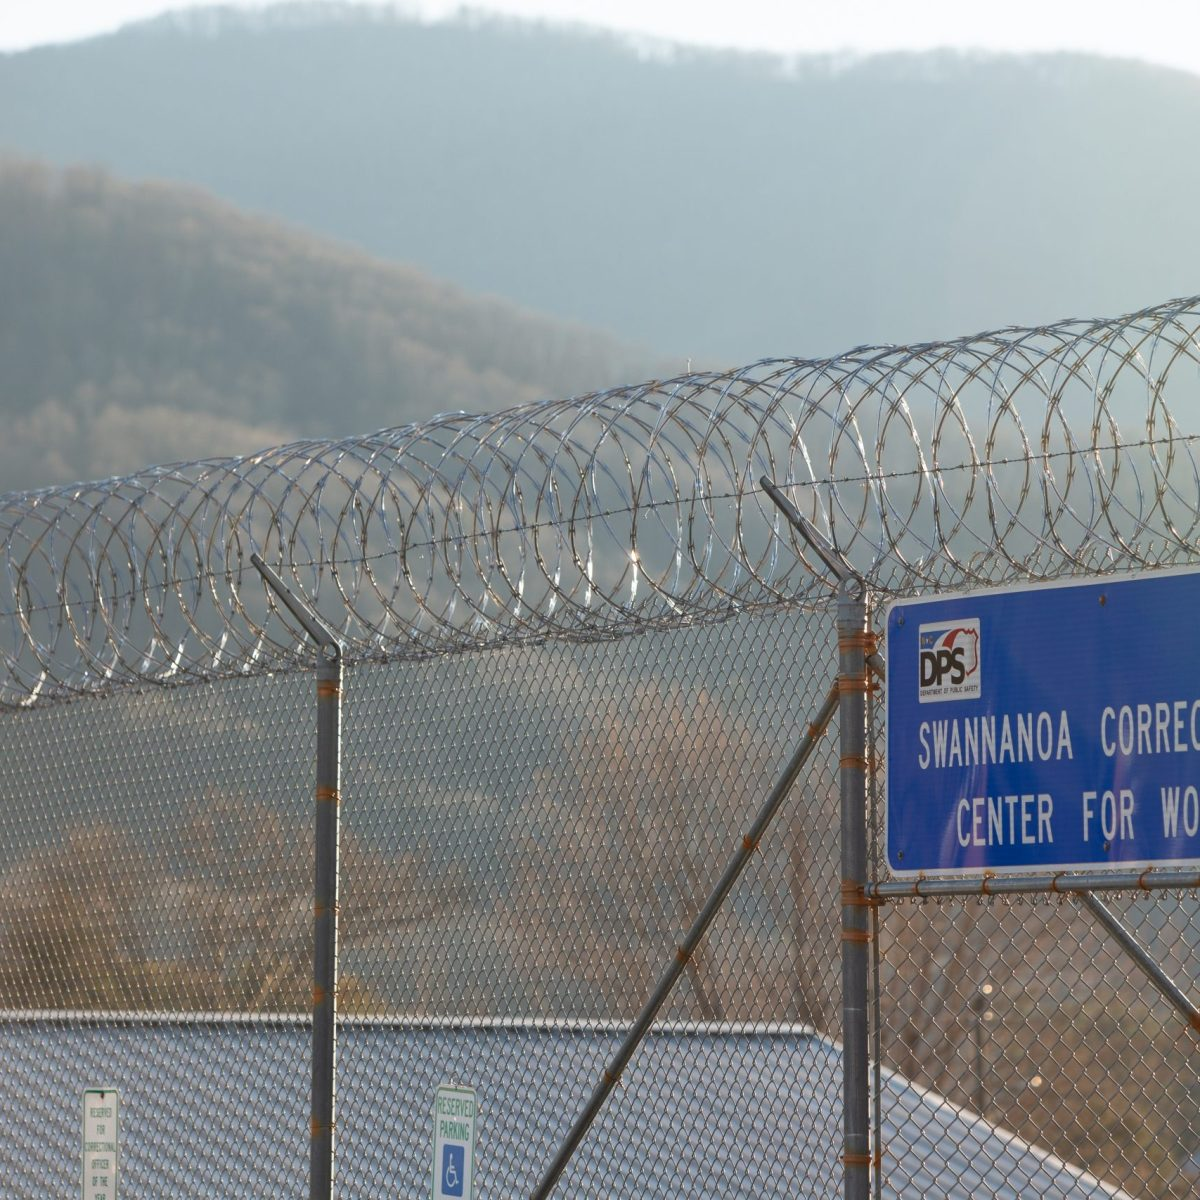 2020 Swannanoa Correctional Center for Women